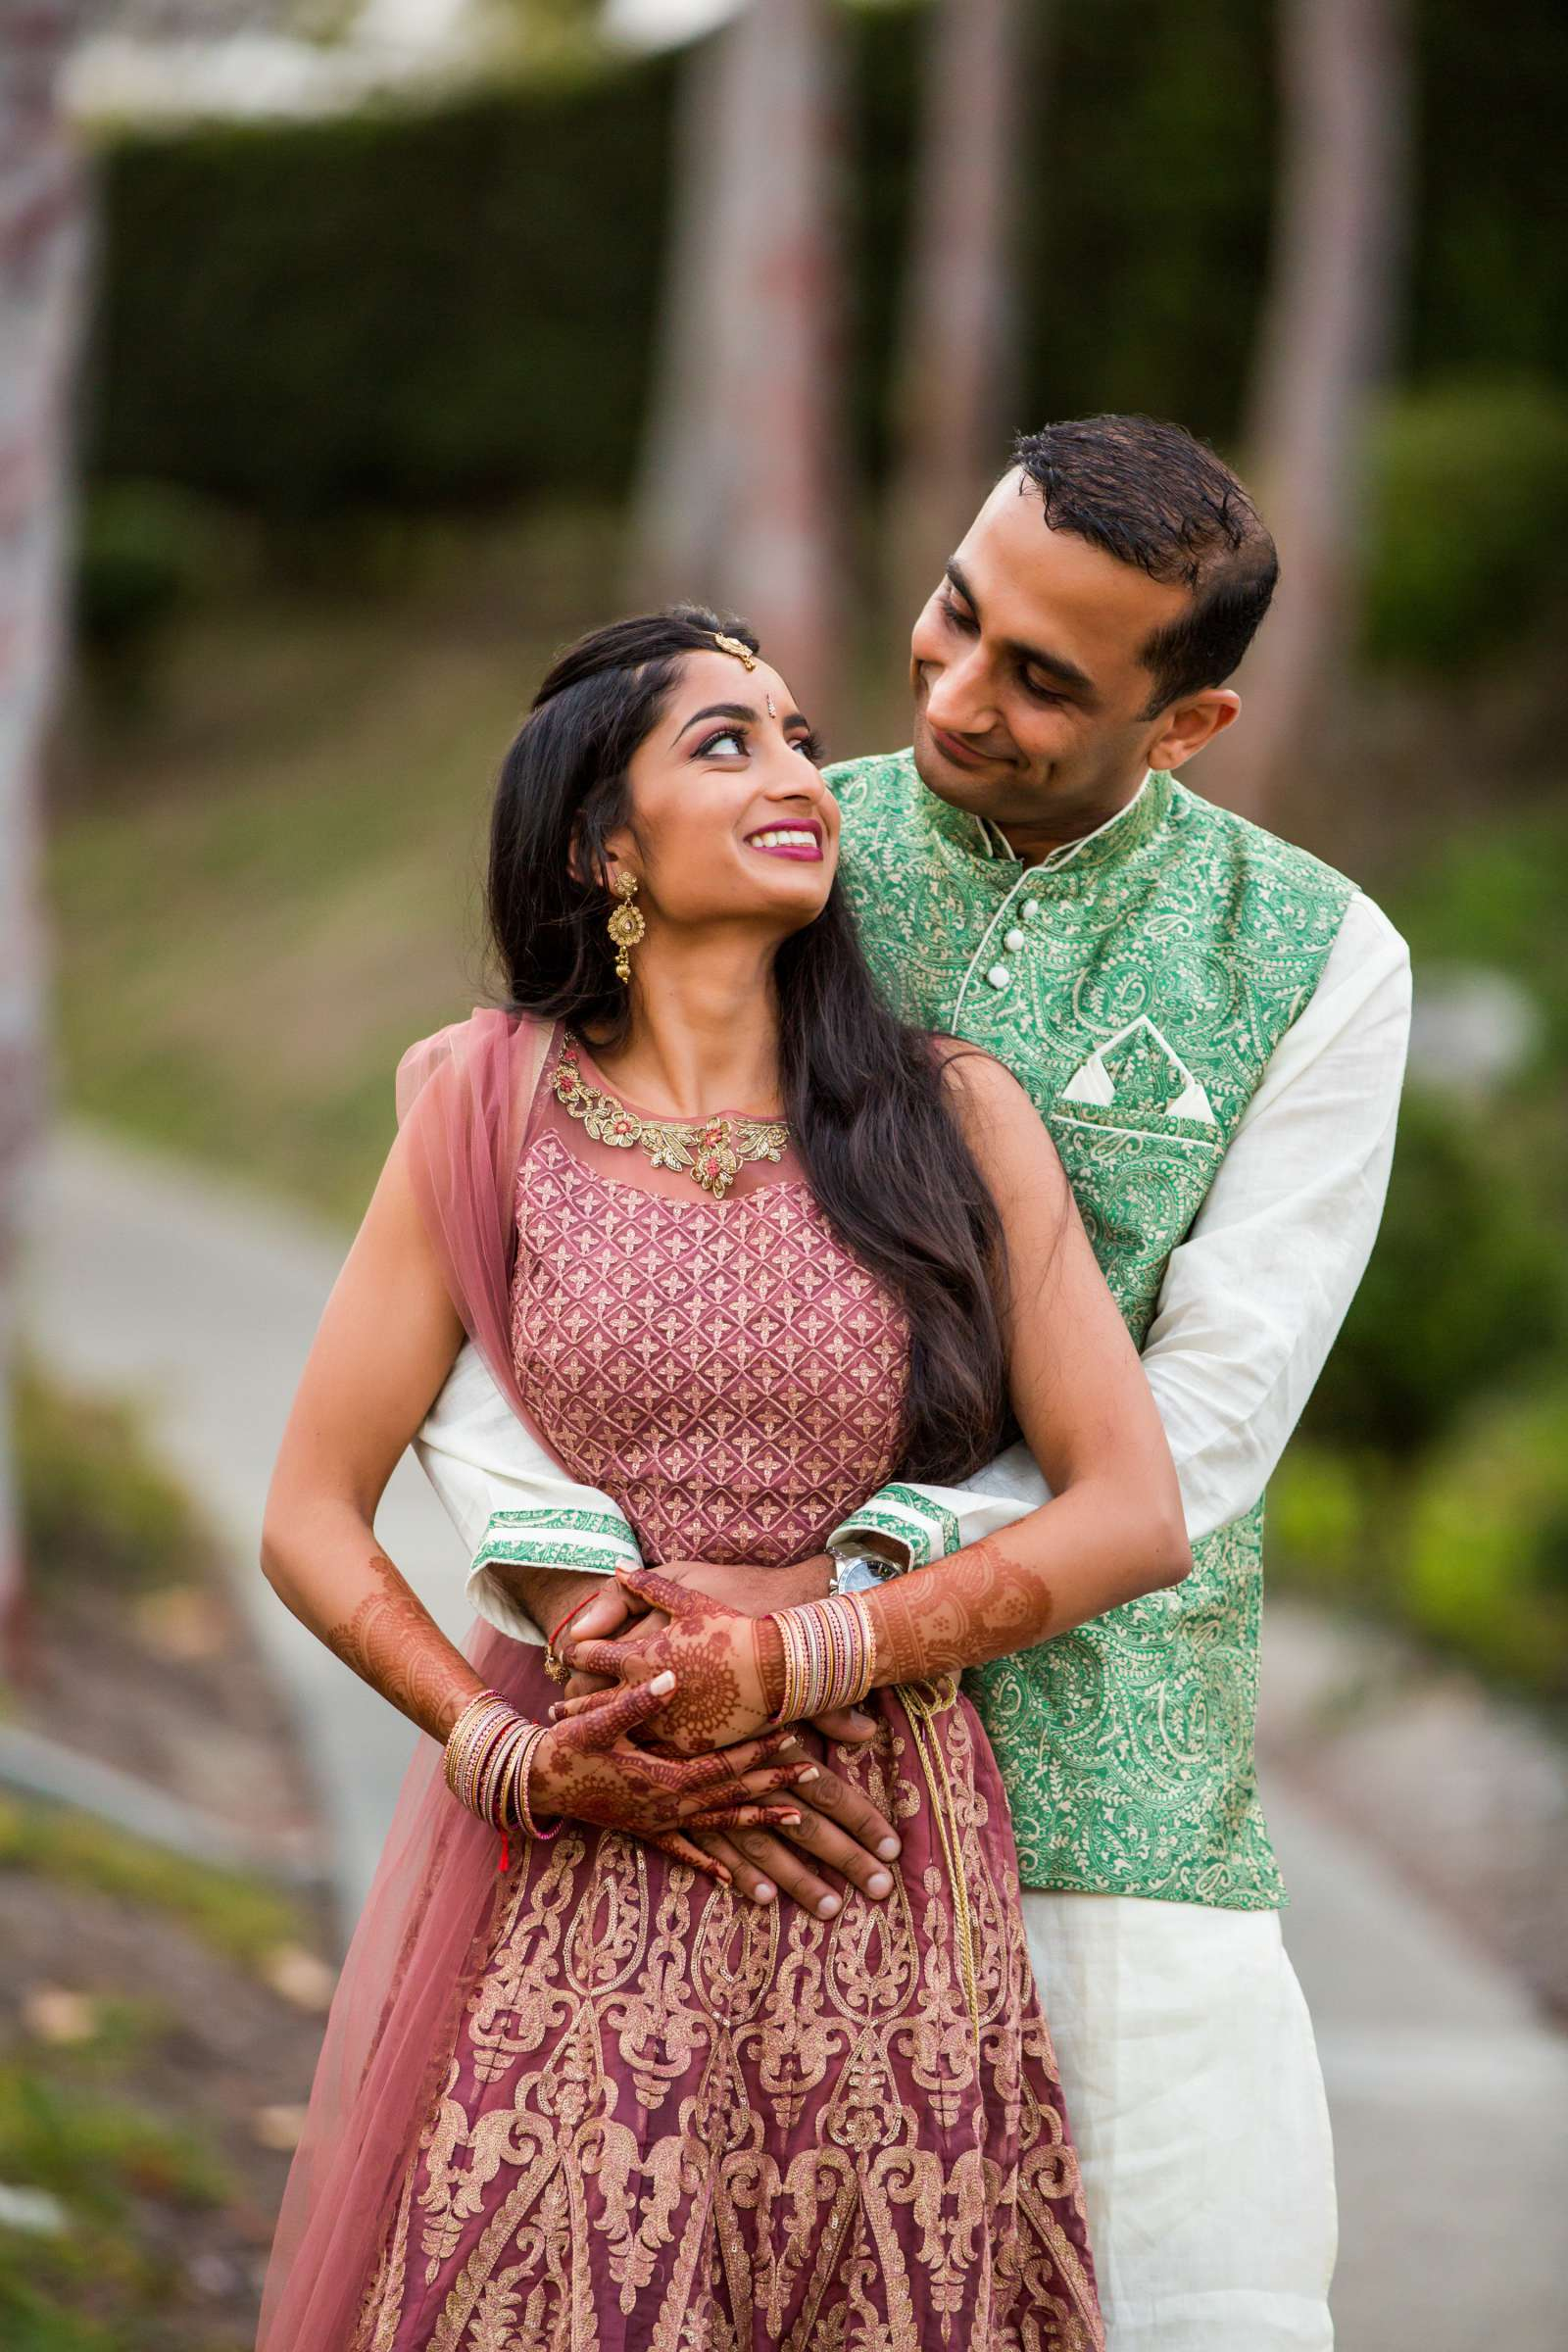 The Westin Carlsbad Resort and Spa Wedding coordinated by Shilpa Patel Events, Ami and Amit Wedding Photo #120 by True Photography